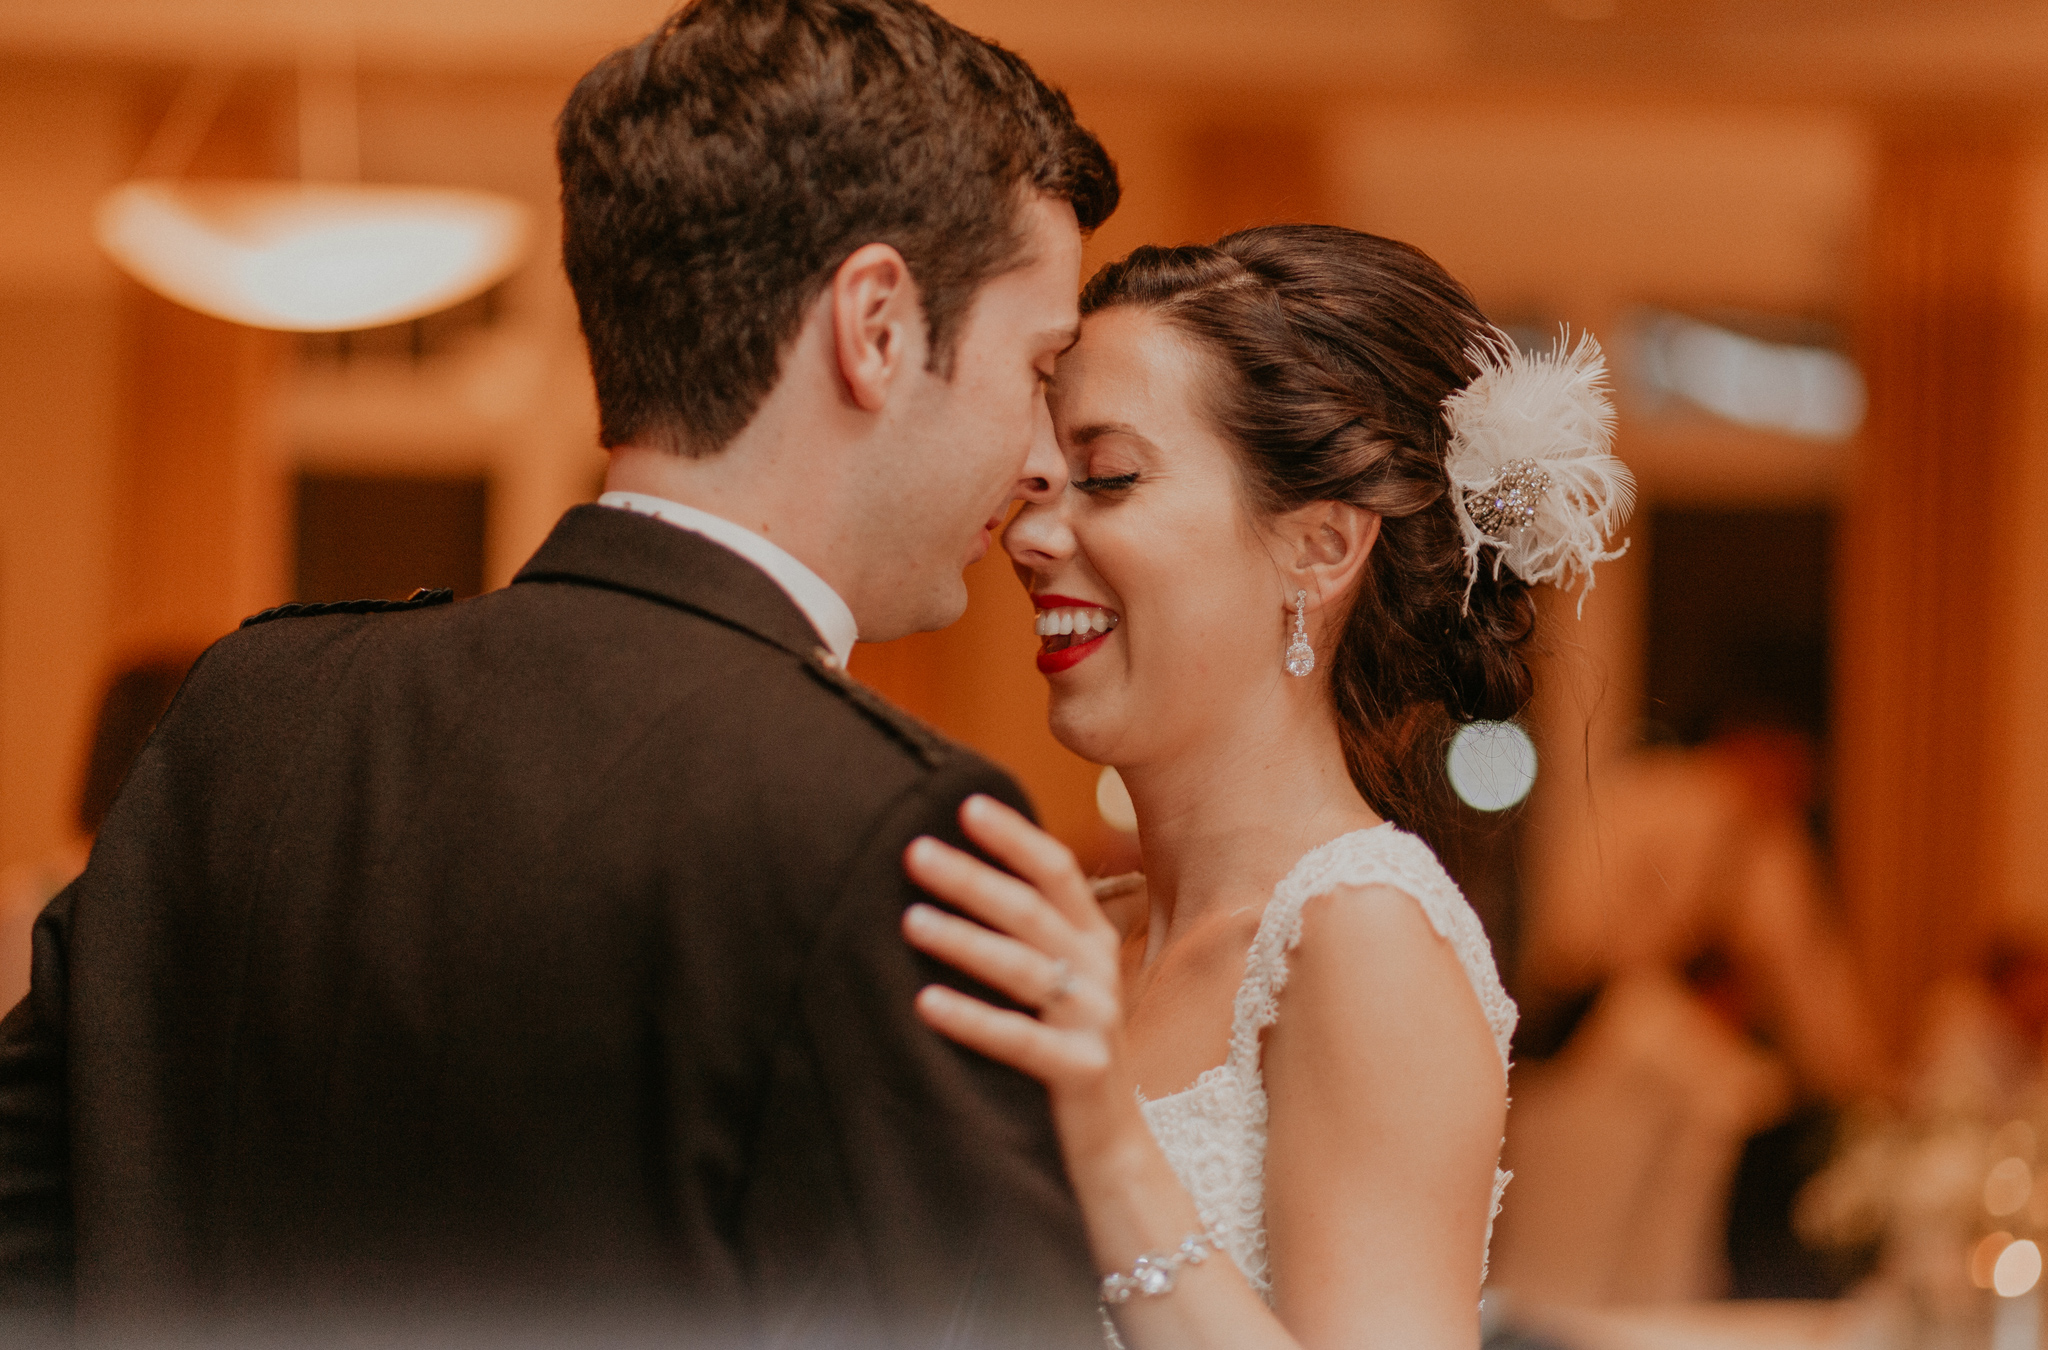 Bride and groom smile in candid documentary photograph picture during wedding reception